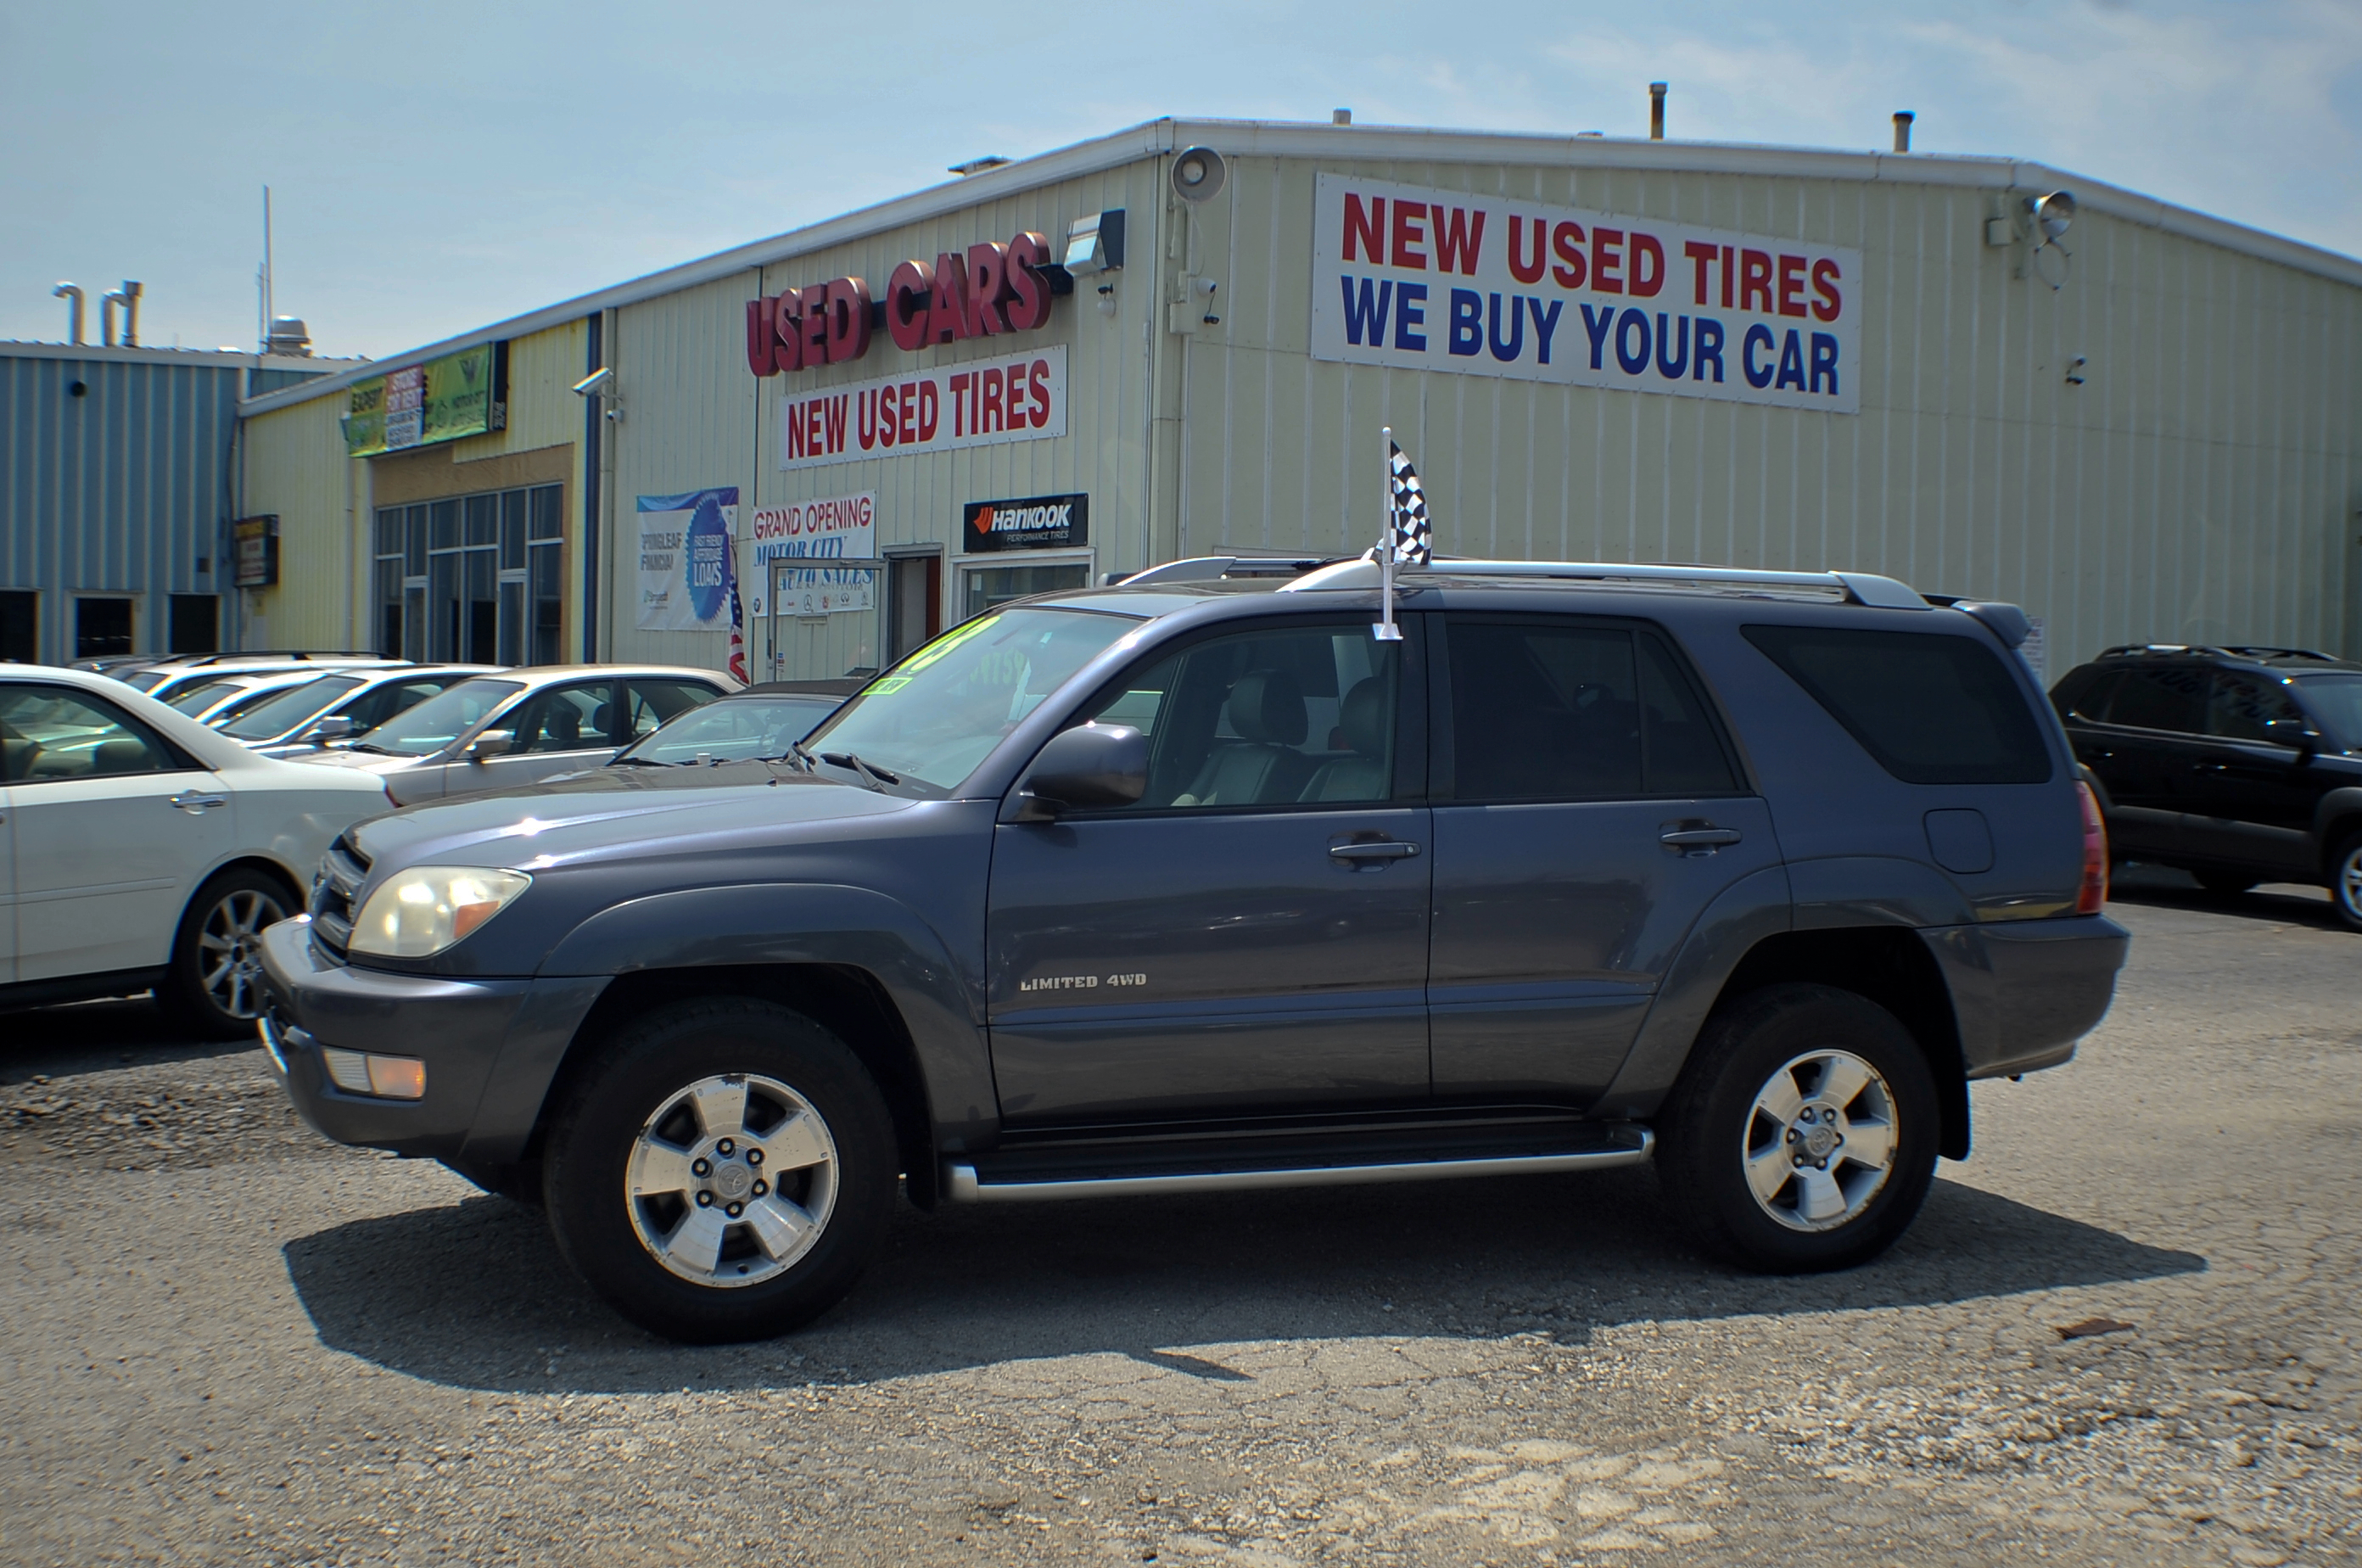 2003 Toyota 4Runner Gray 4x4 SUV Used Car Sale Antioch Grayslake